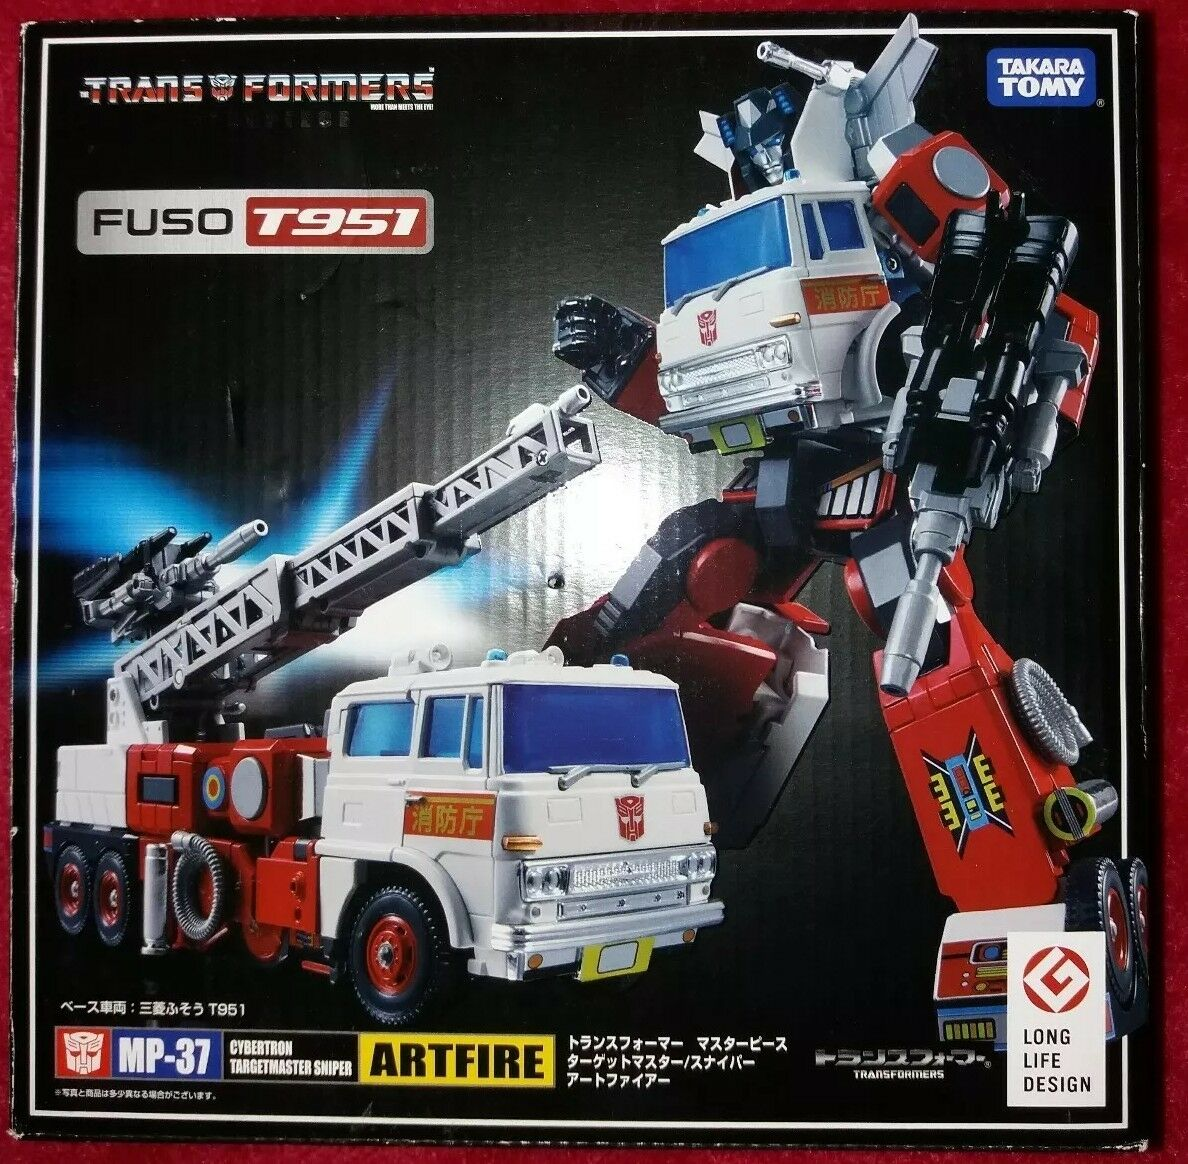 Transformers Takara Masterpiece MP-37 Artfire oficial (MIB)